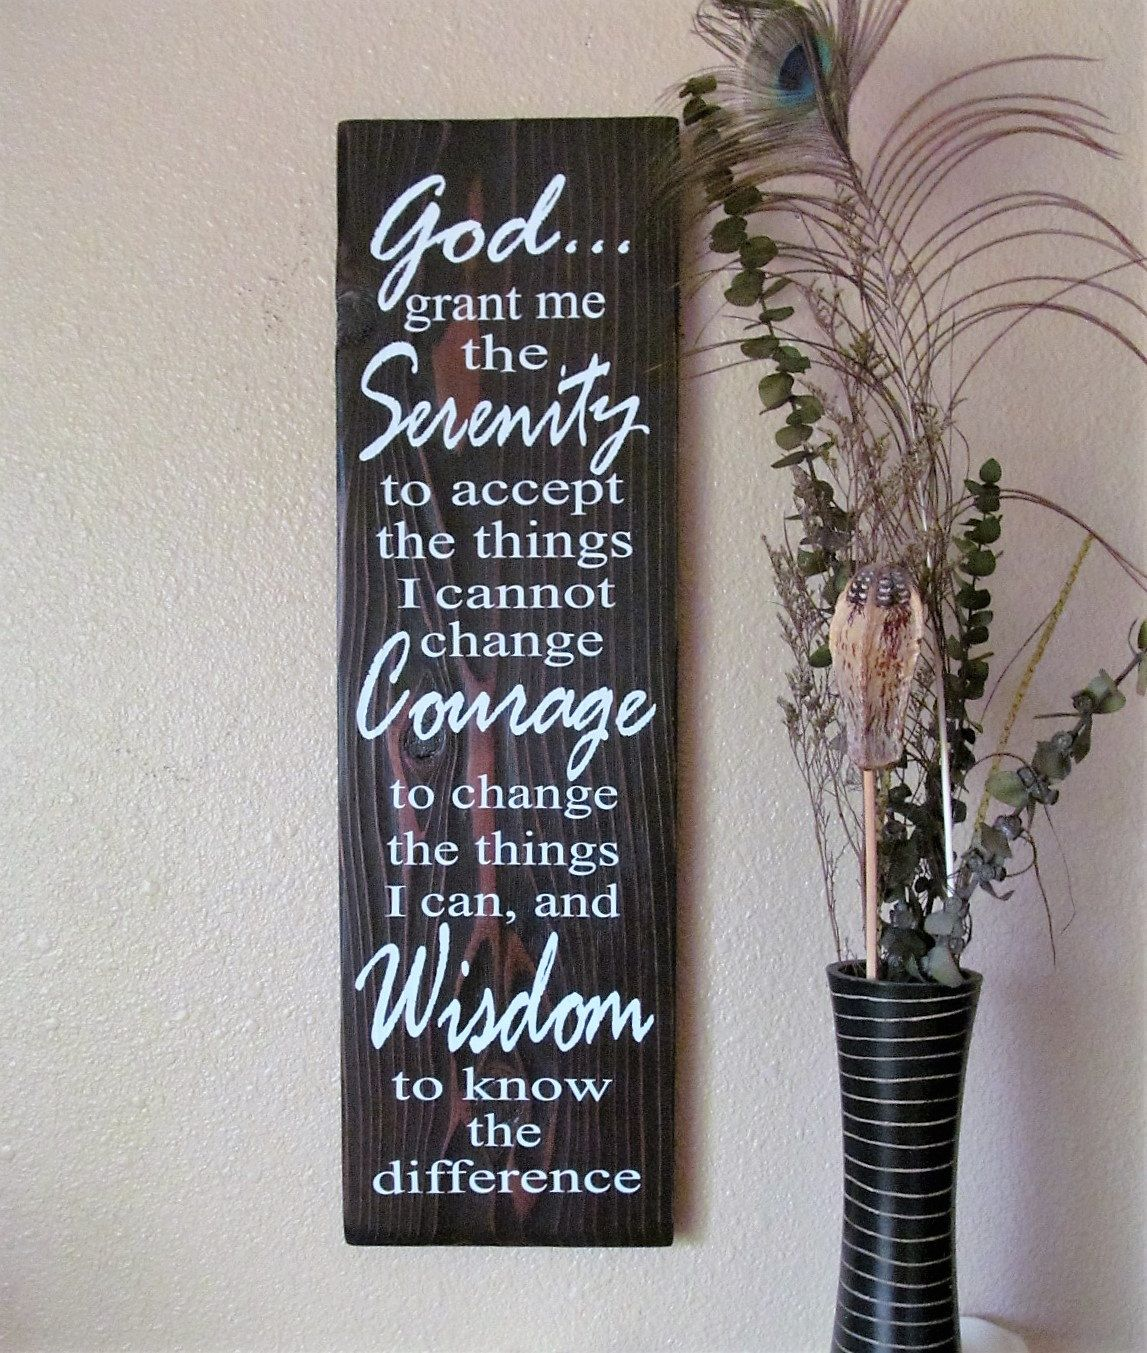 Serenity Prayer Beautiful Inspirational Sign Made With Kona Stained Cedar And White Lettering Home Decor